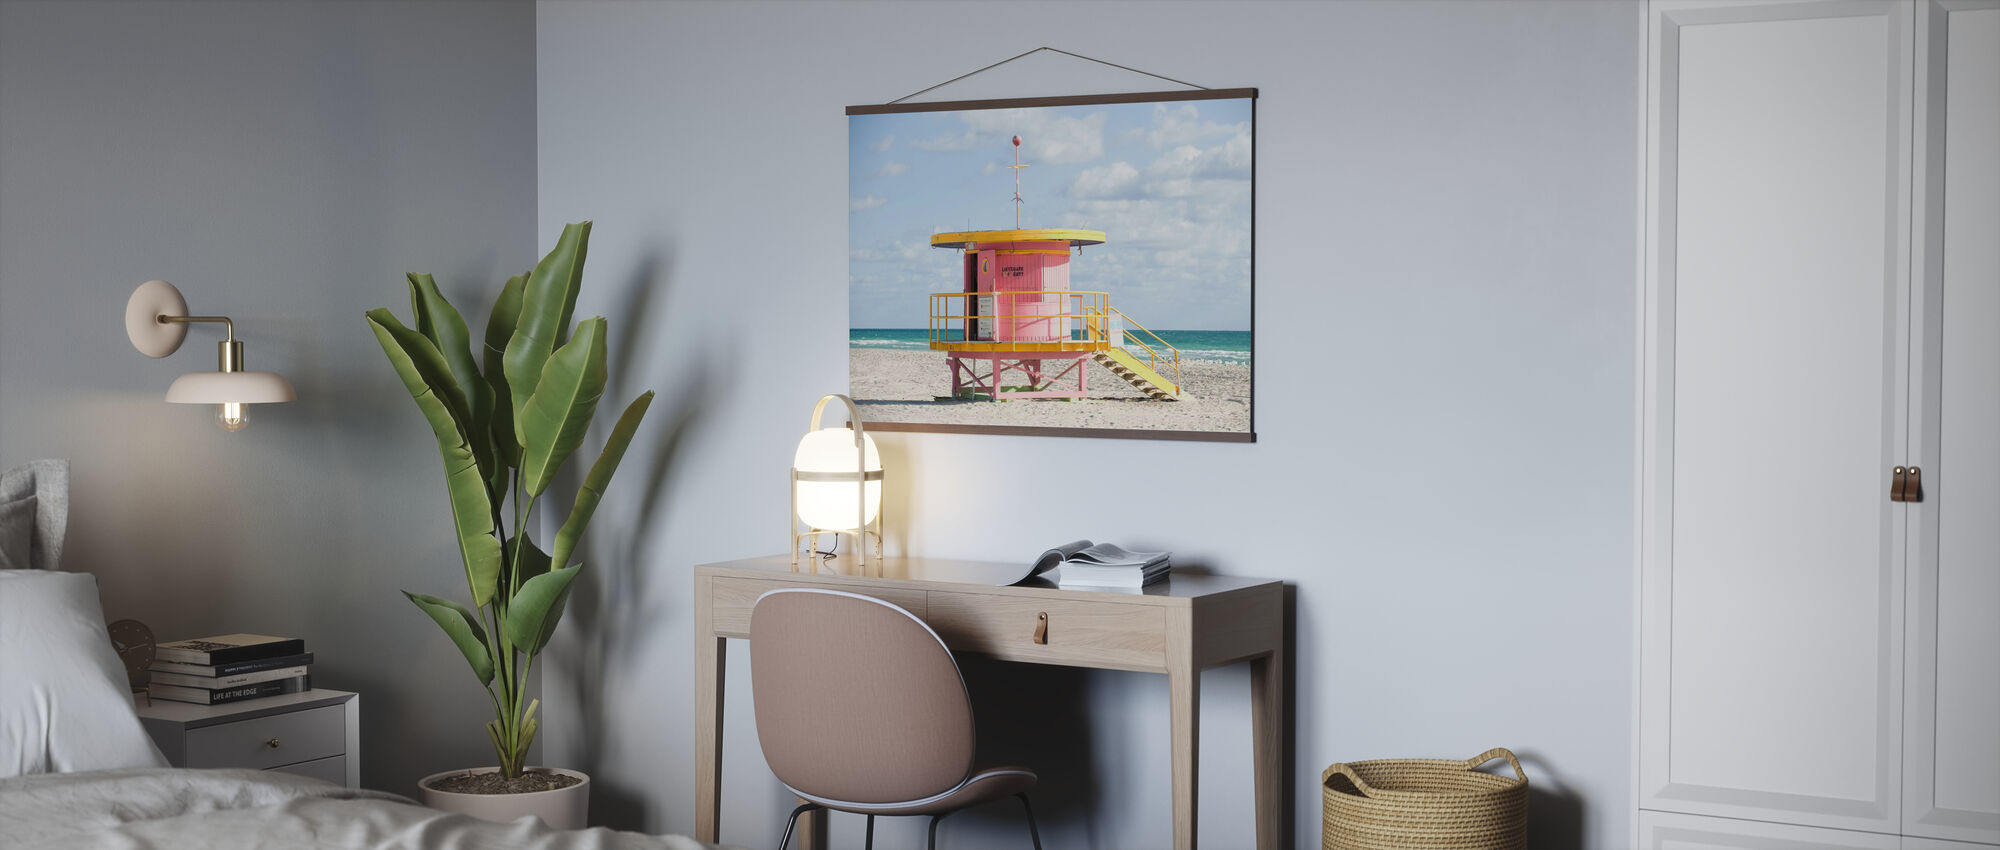 Lifeguard Tower in Miami, USA - Poster - Office